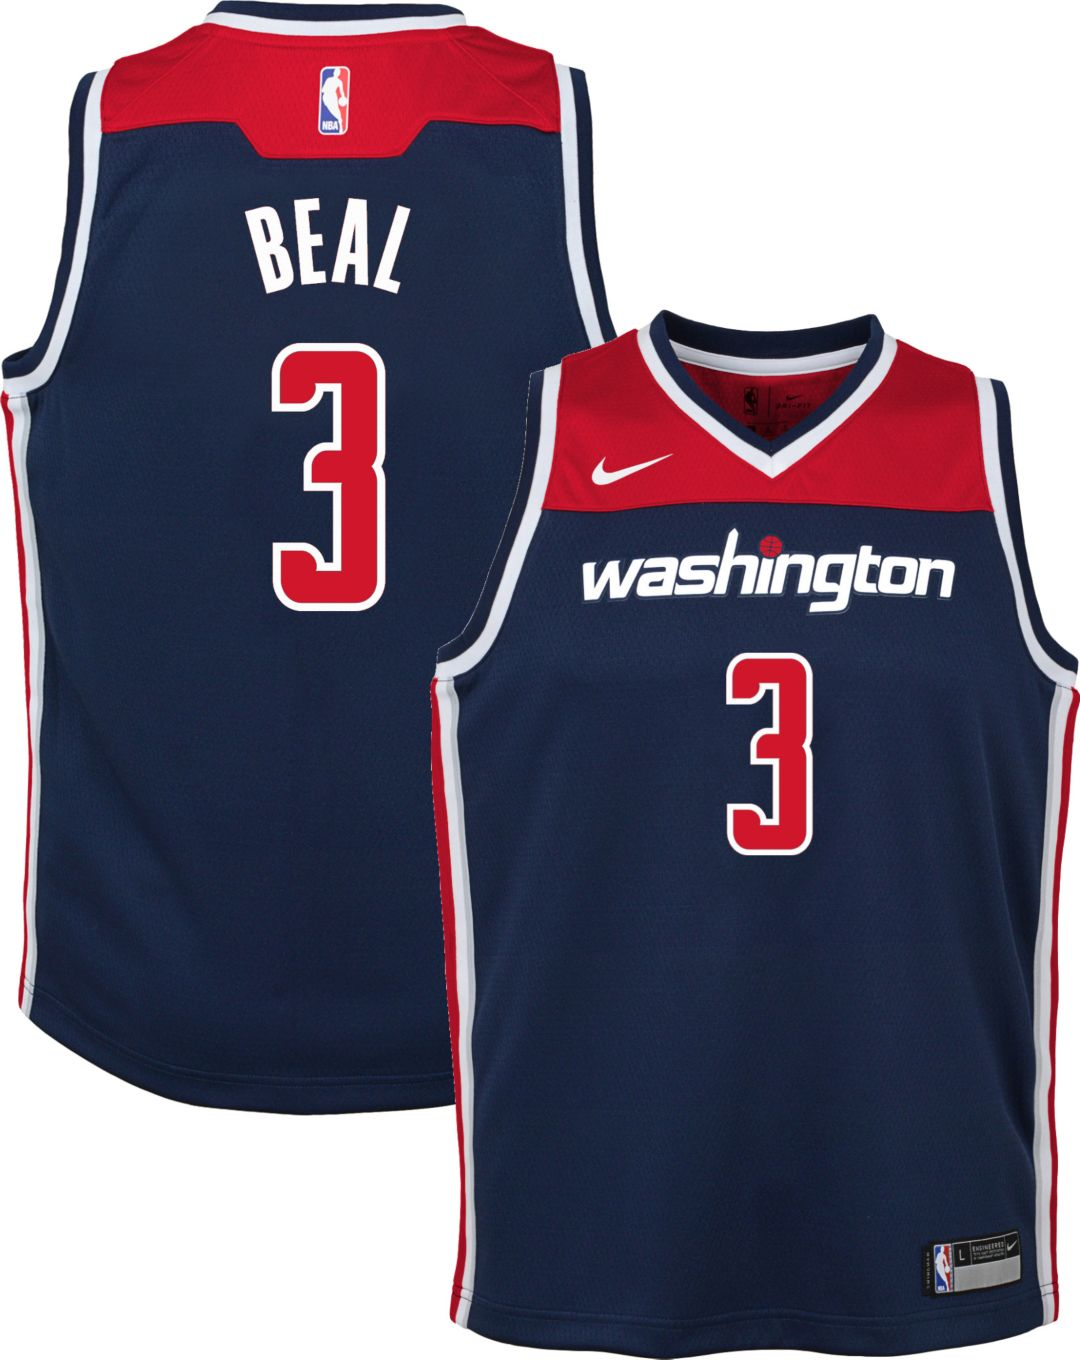 meet 5a2f7 9911d Nike Youth Washington Wizards Bradley Beal #3 Navy Dri-FIT Swingman Jersey